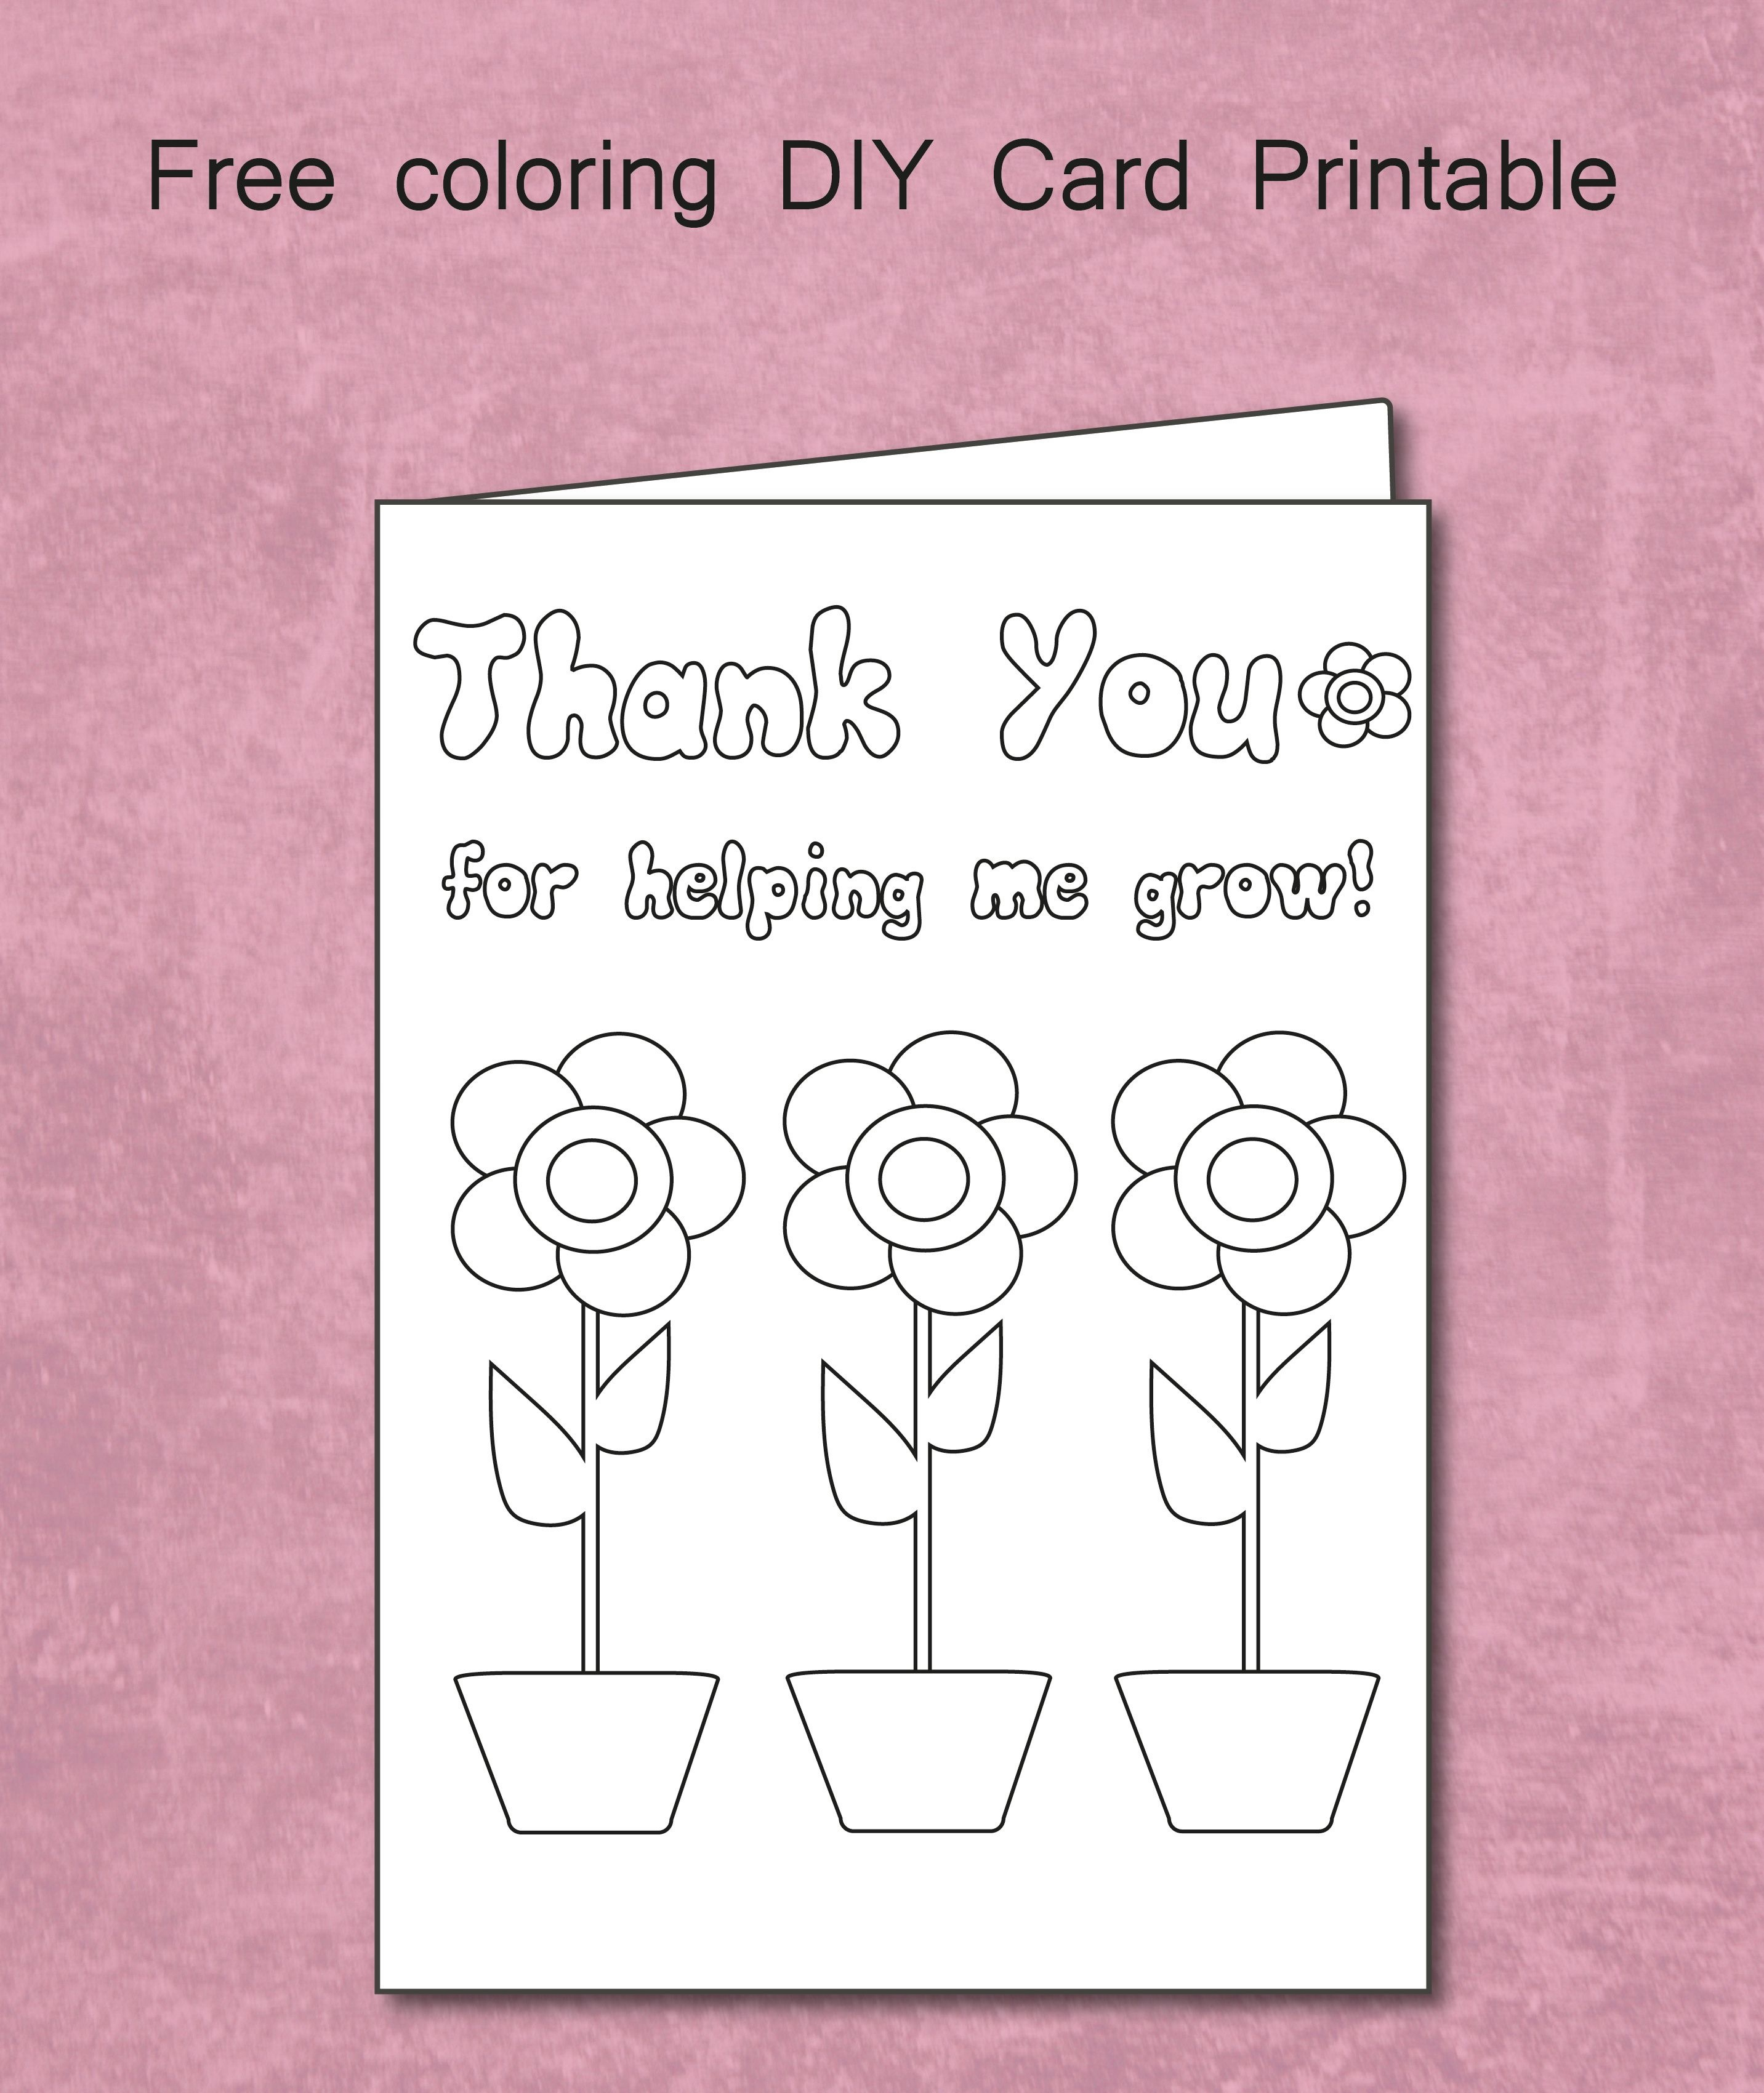 Free Thank You For Helping Me Grow - Coloring Card Printable - Free Printable Volunteer Thank You Cards